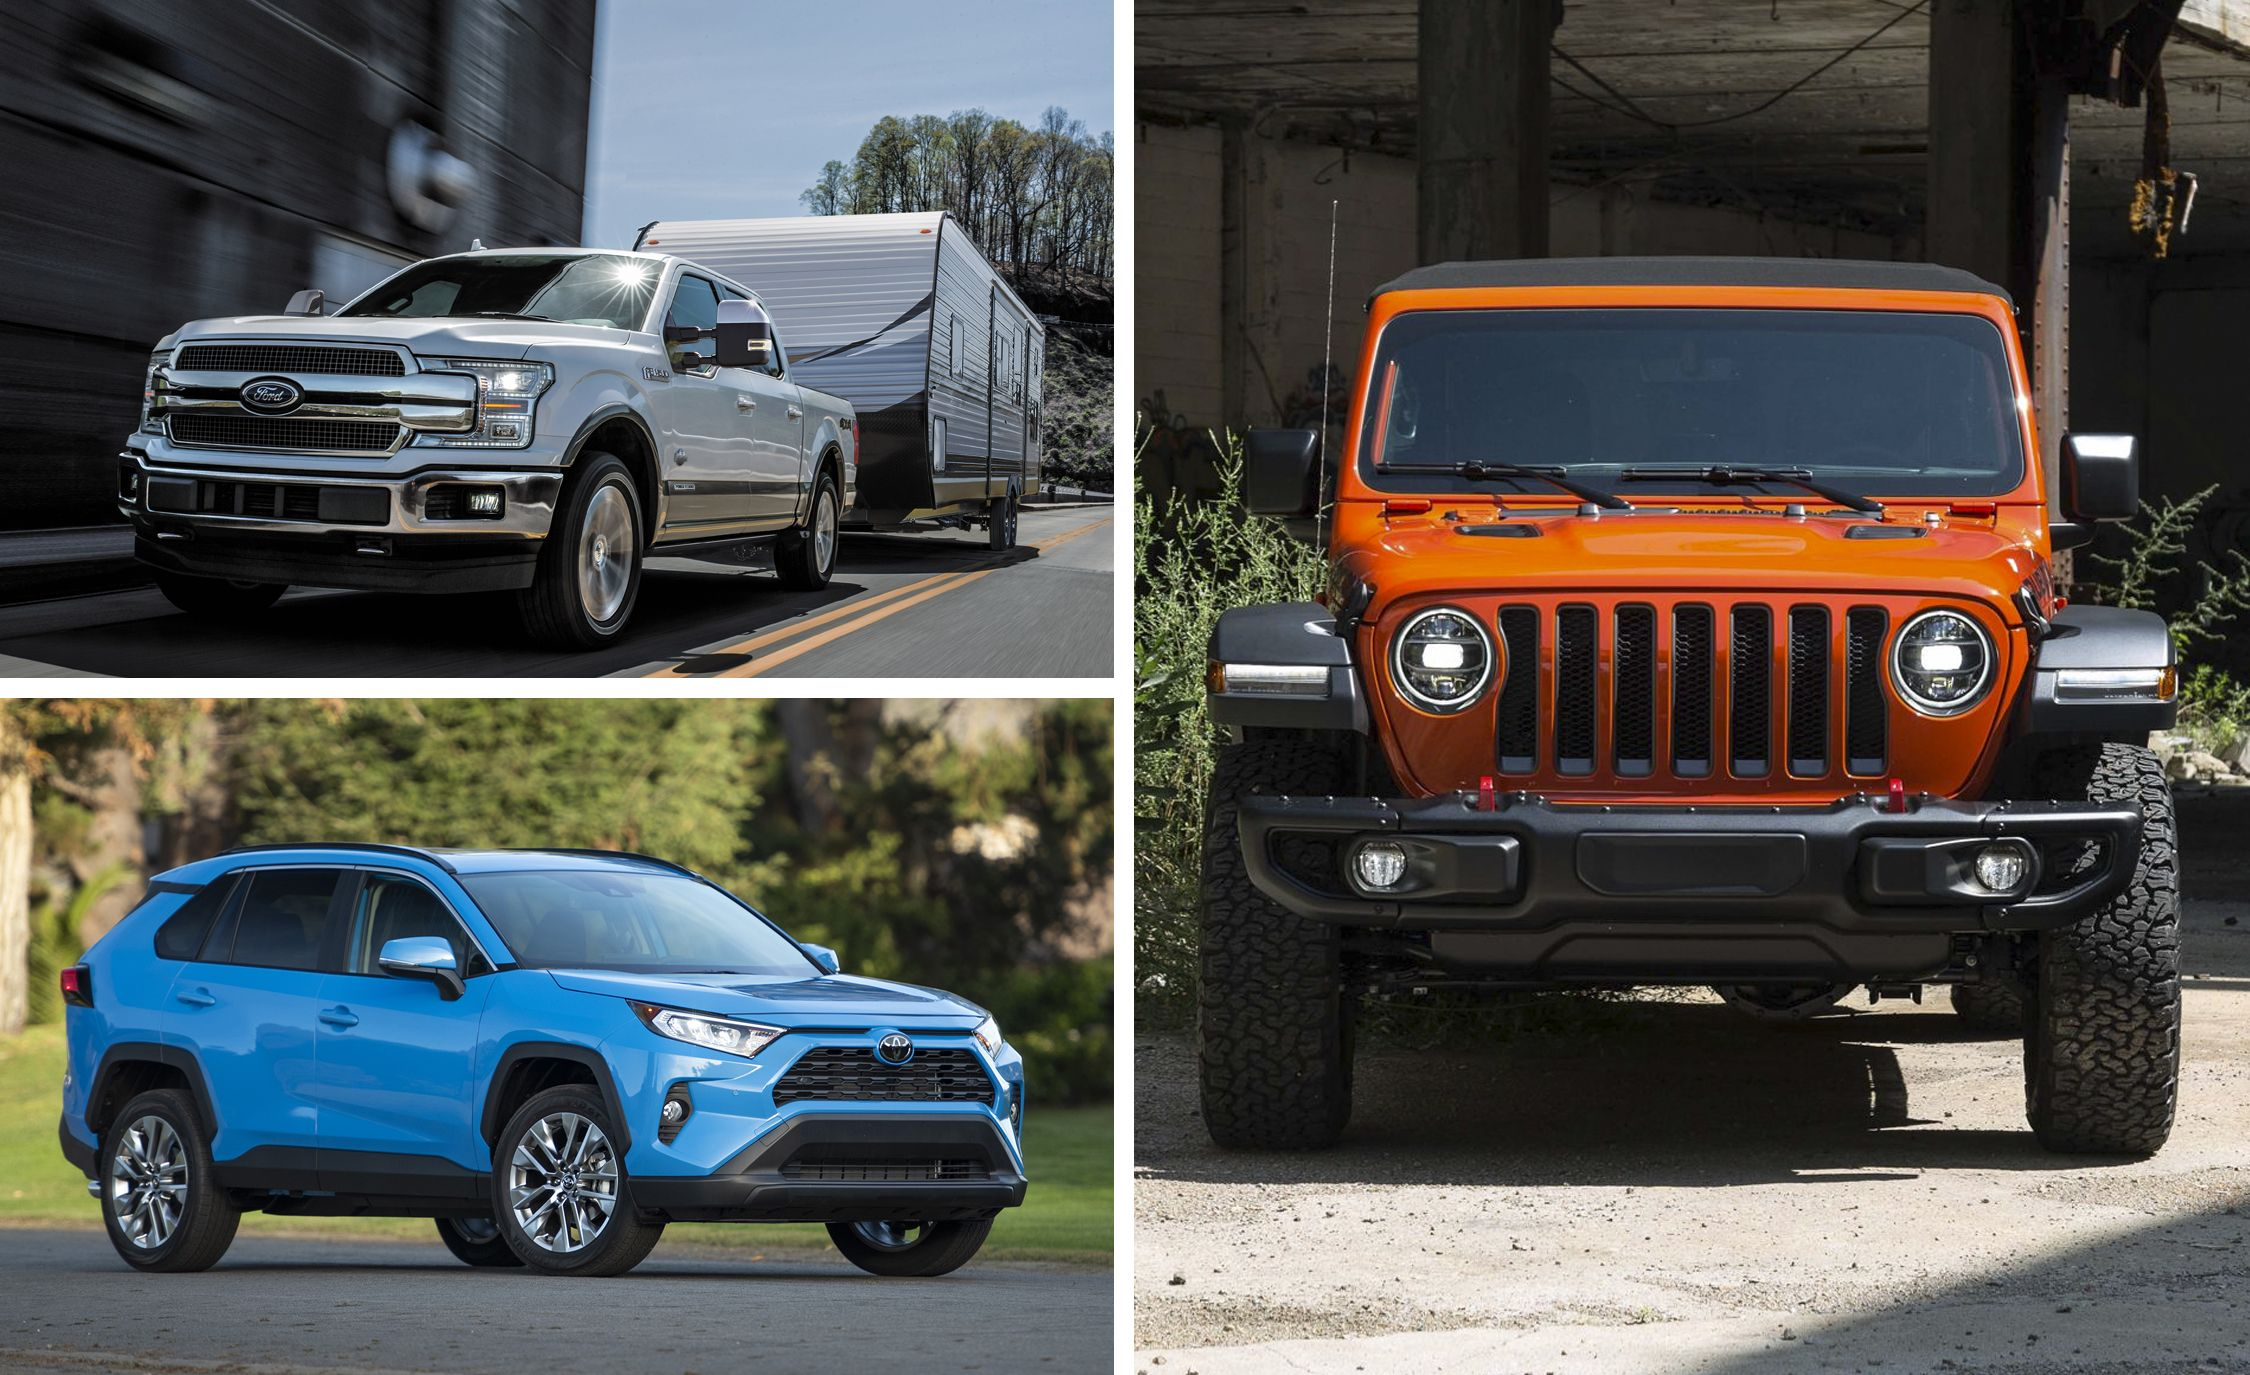 25 Best-Selling Cars, SUVs, and Trucks in America in 2018